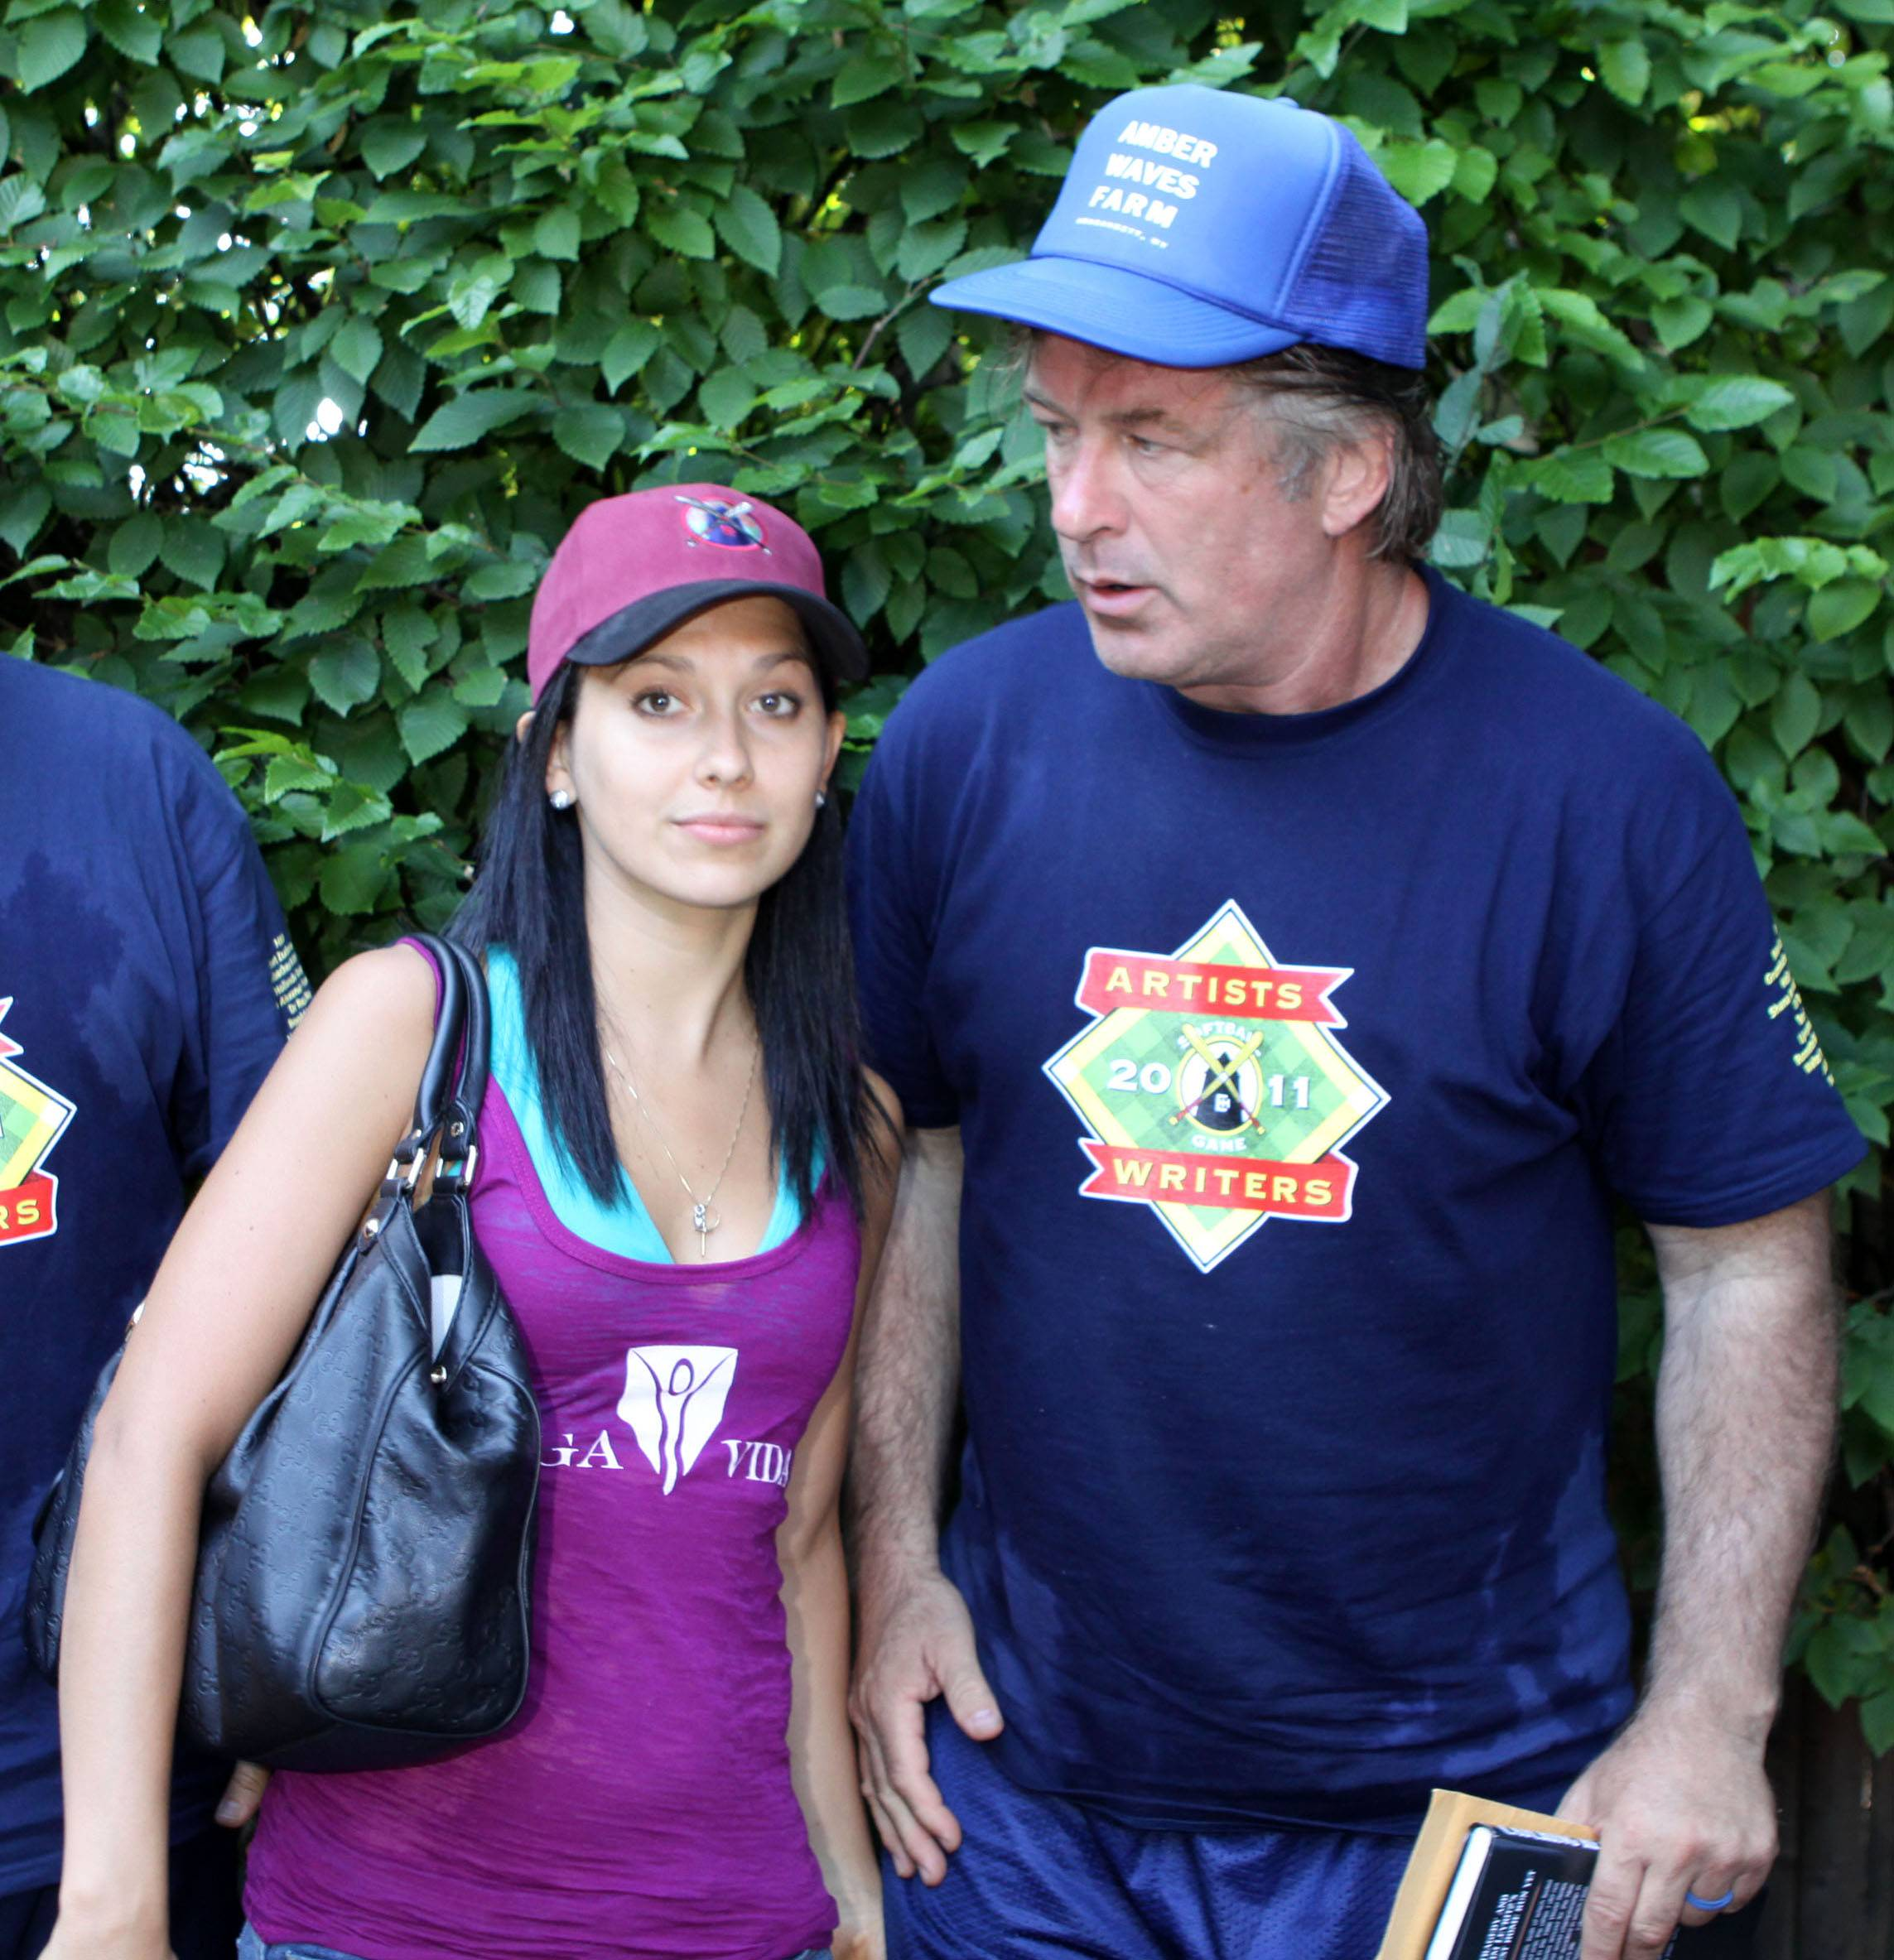 xalec_baldwin_moves_in_with_his_young_love_hilaria_thomas.jpg.pagespeed.ic.5SPGlbx3xU